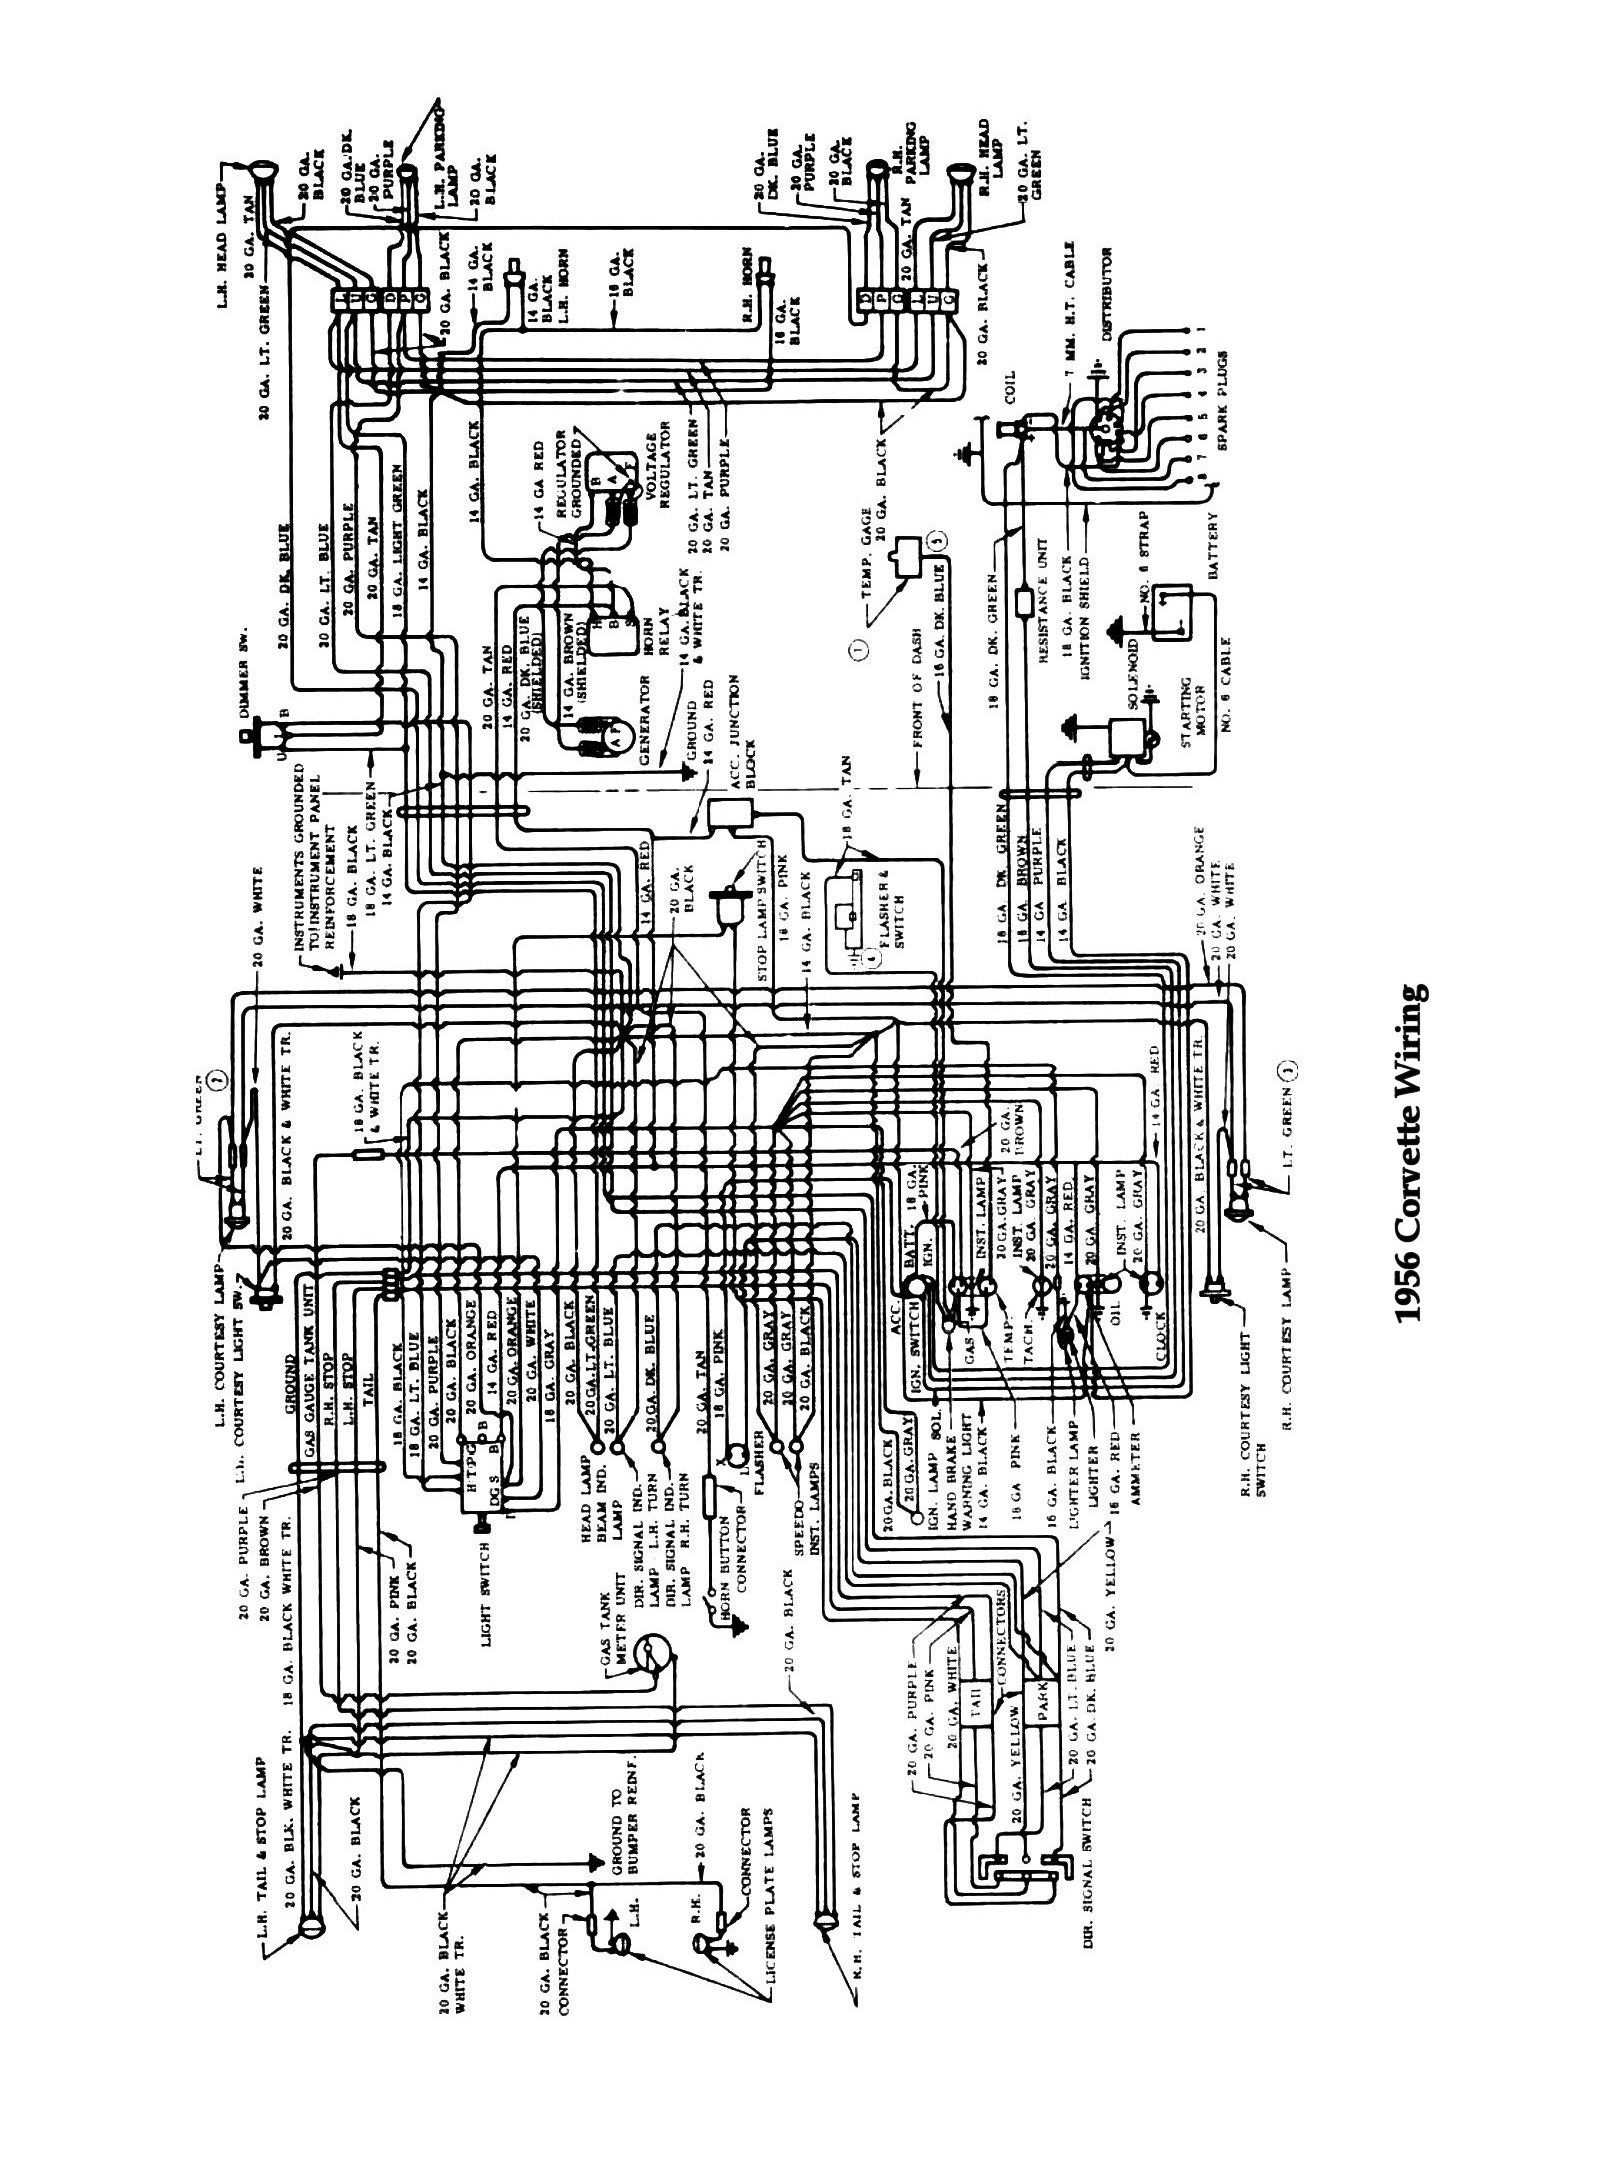 1976 Chevy Fuel Wiring Diagram Trusted Chevrolet 1958 Corvette Schematics Jeep